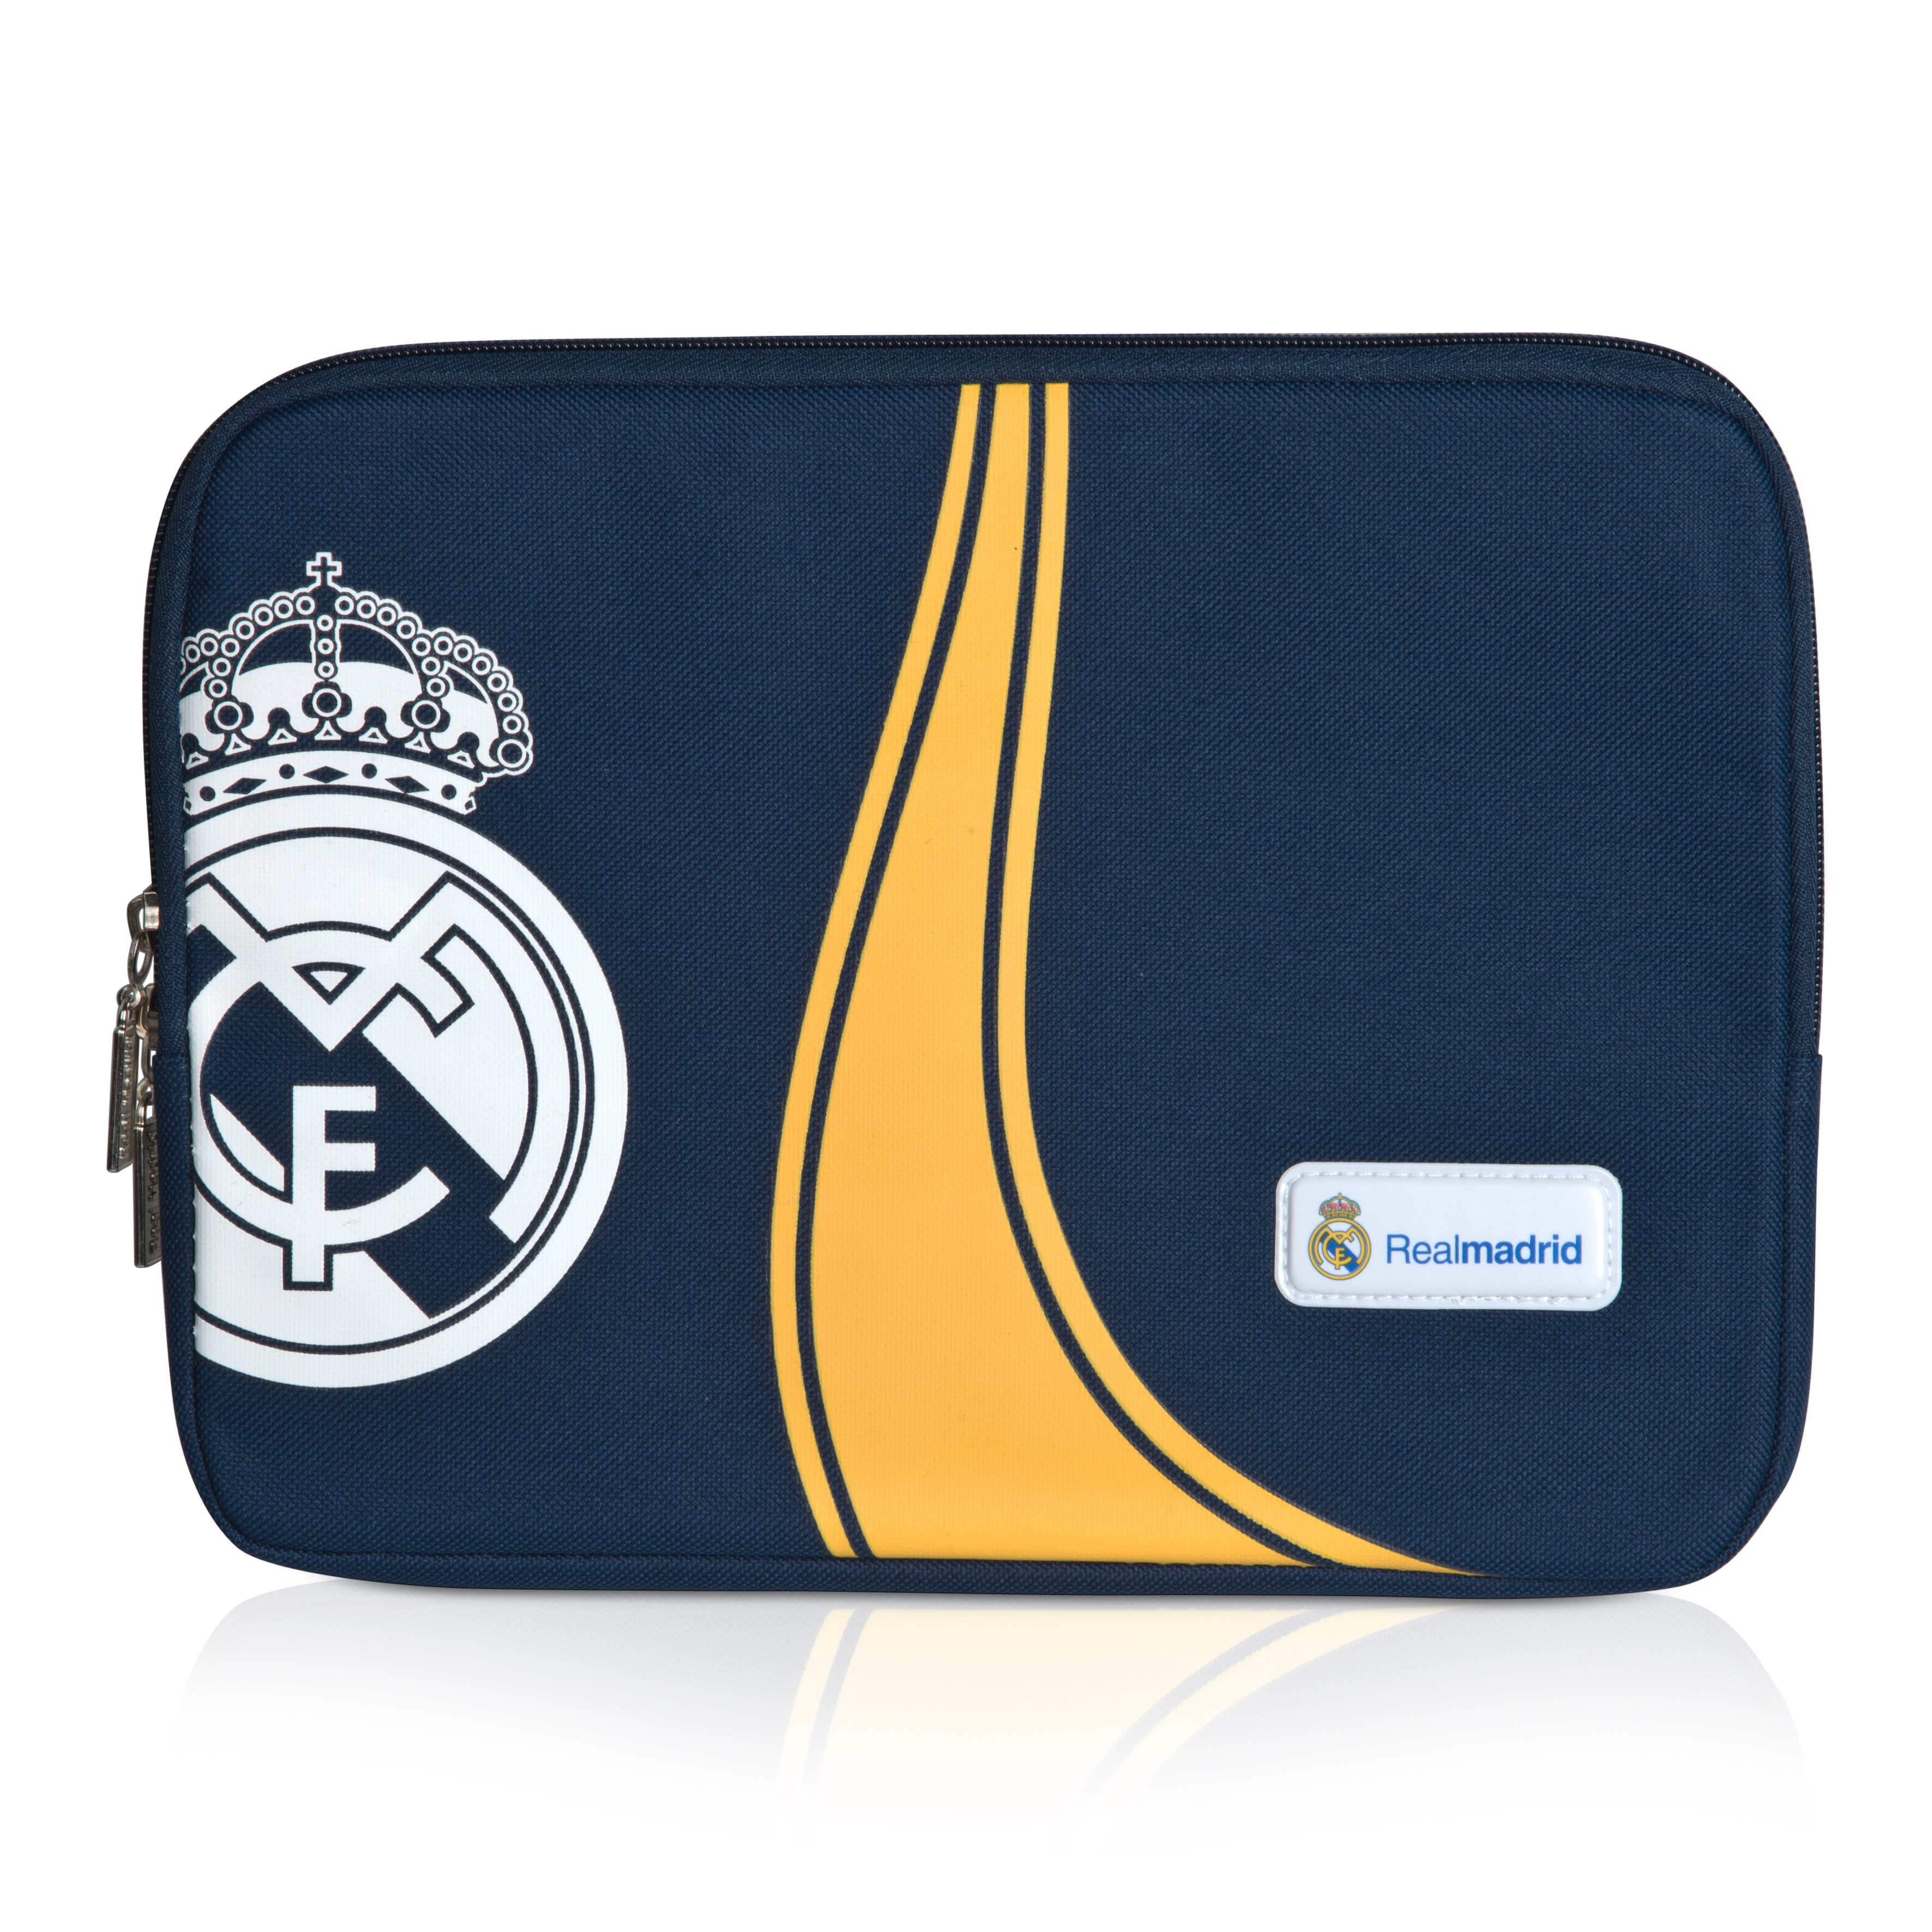 Real Madrid Laptop Bag - 27.5 x 20.5 x 2.5cm